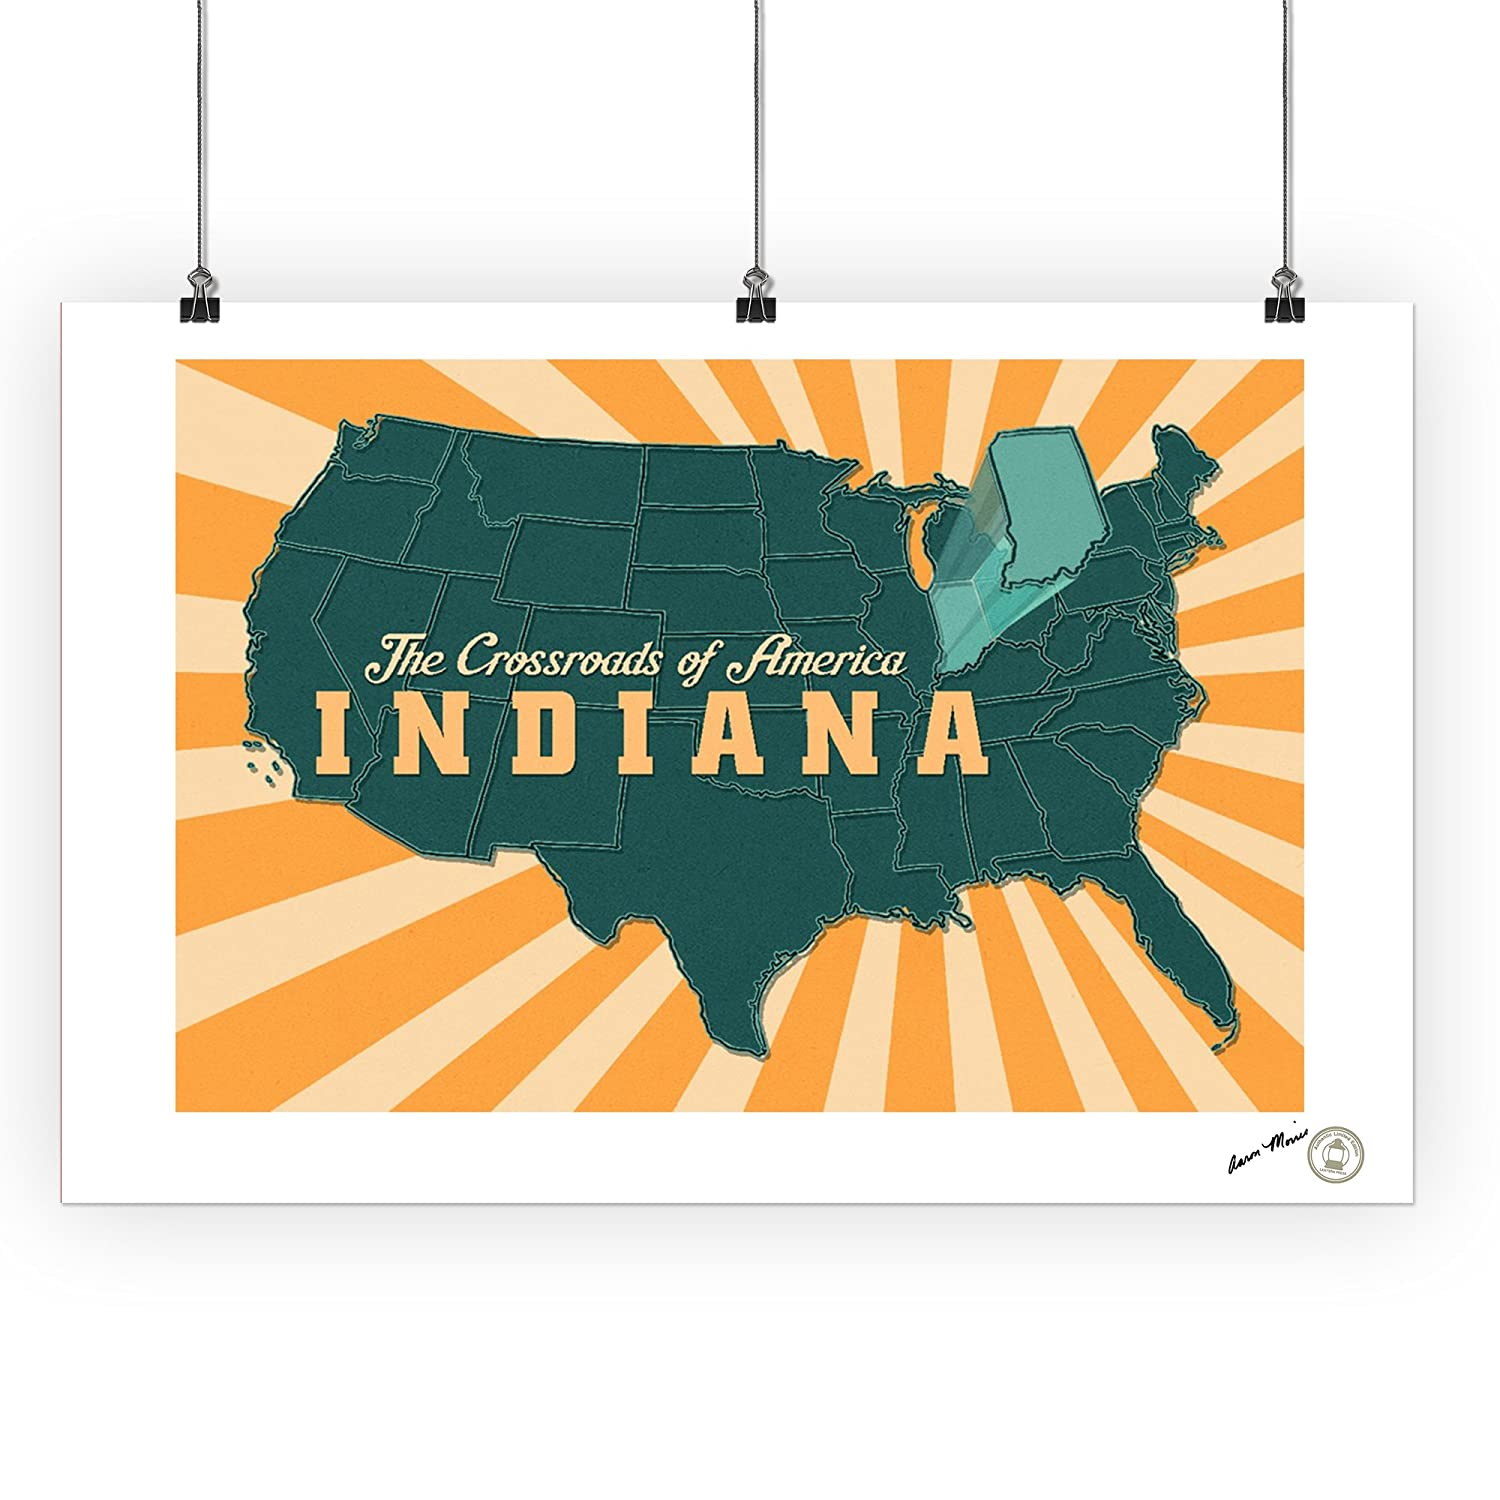 Amazon.com: Indiana - The Crossroads of America Map - Pop Out State on free printable missouri map, free printable idaho map, free printable oregon map, free printable kansas map, free printable michigan map, free printable navy map, free printable ohio map, free printable georgia map, free printable texas map, free printable illinois map, free printable washington map, free printable arkansas map, free printable tennessee map, free printable wisconsin map, free printable hawaii map, free printable maryland map, free printable nebraska map,